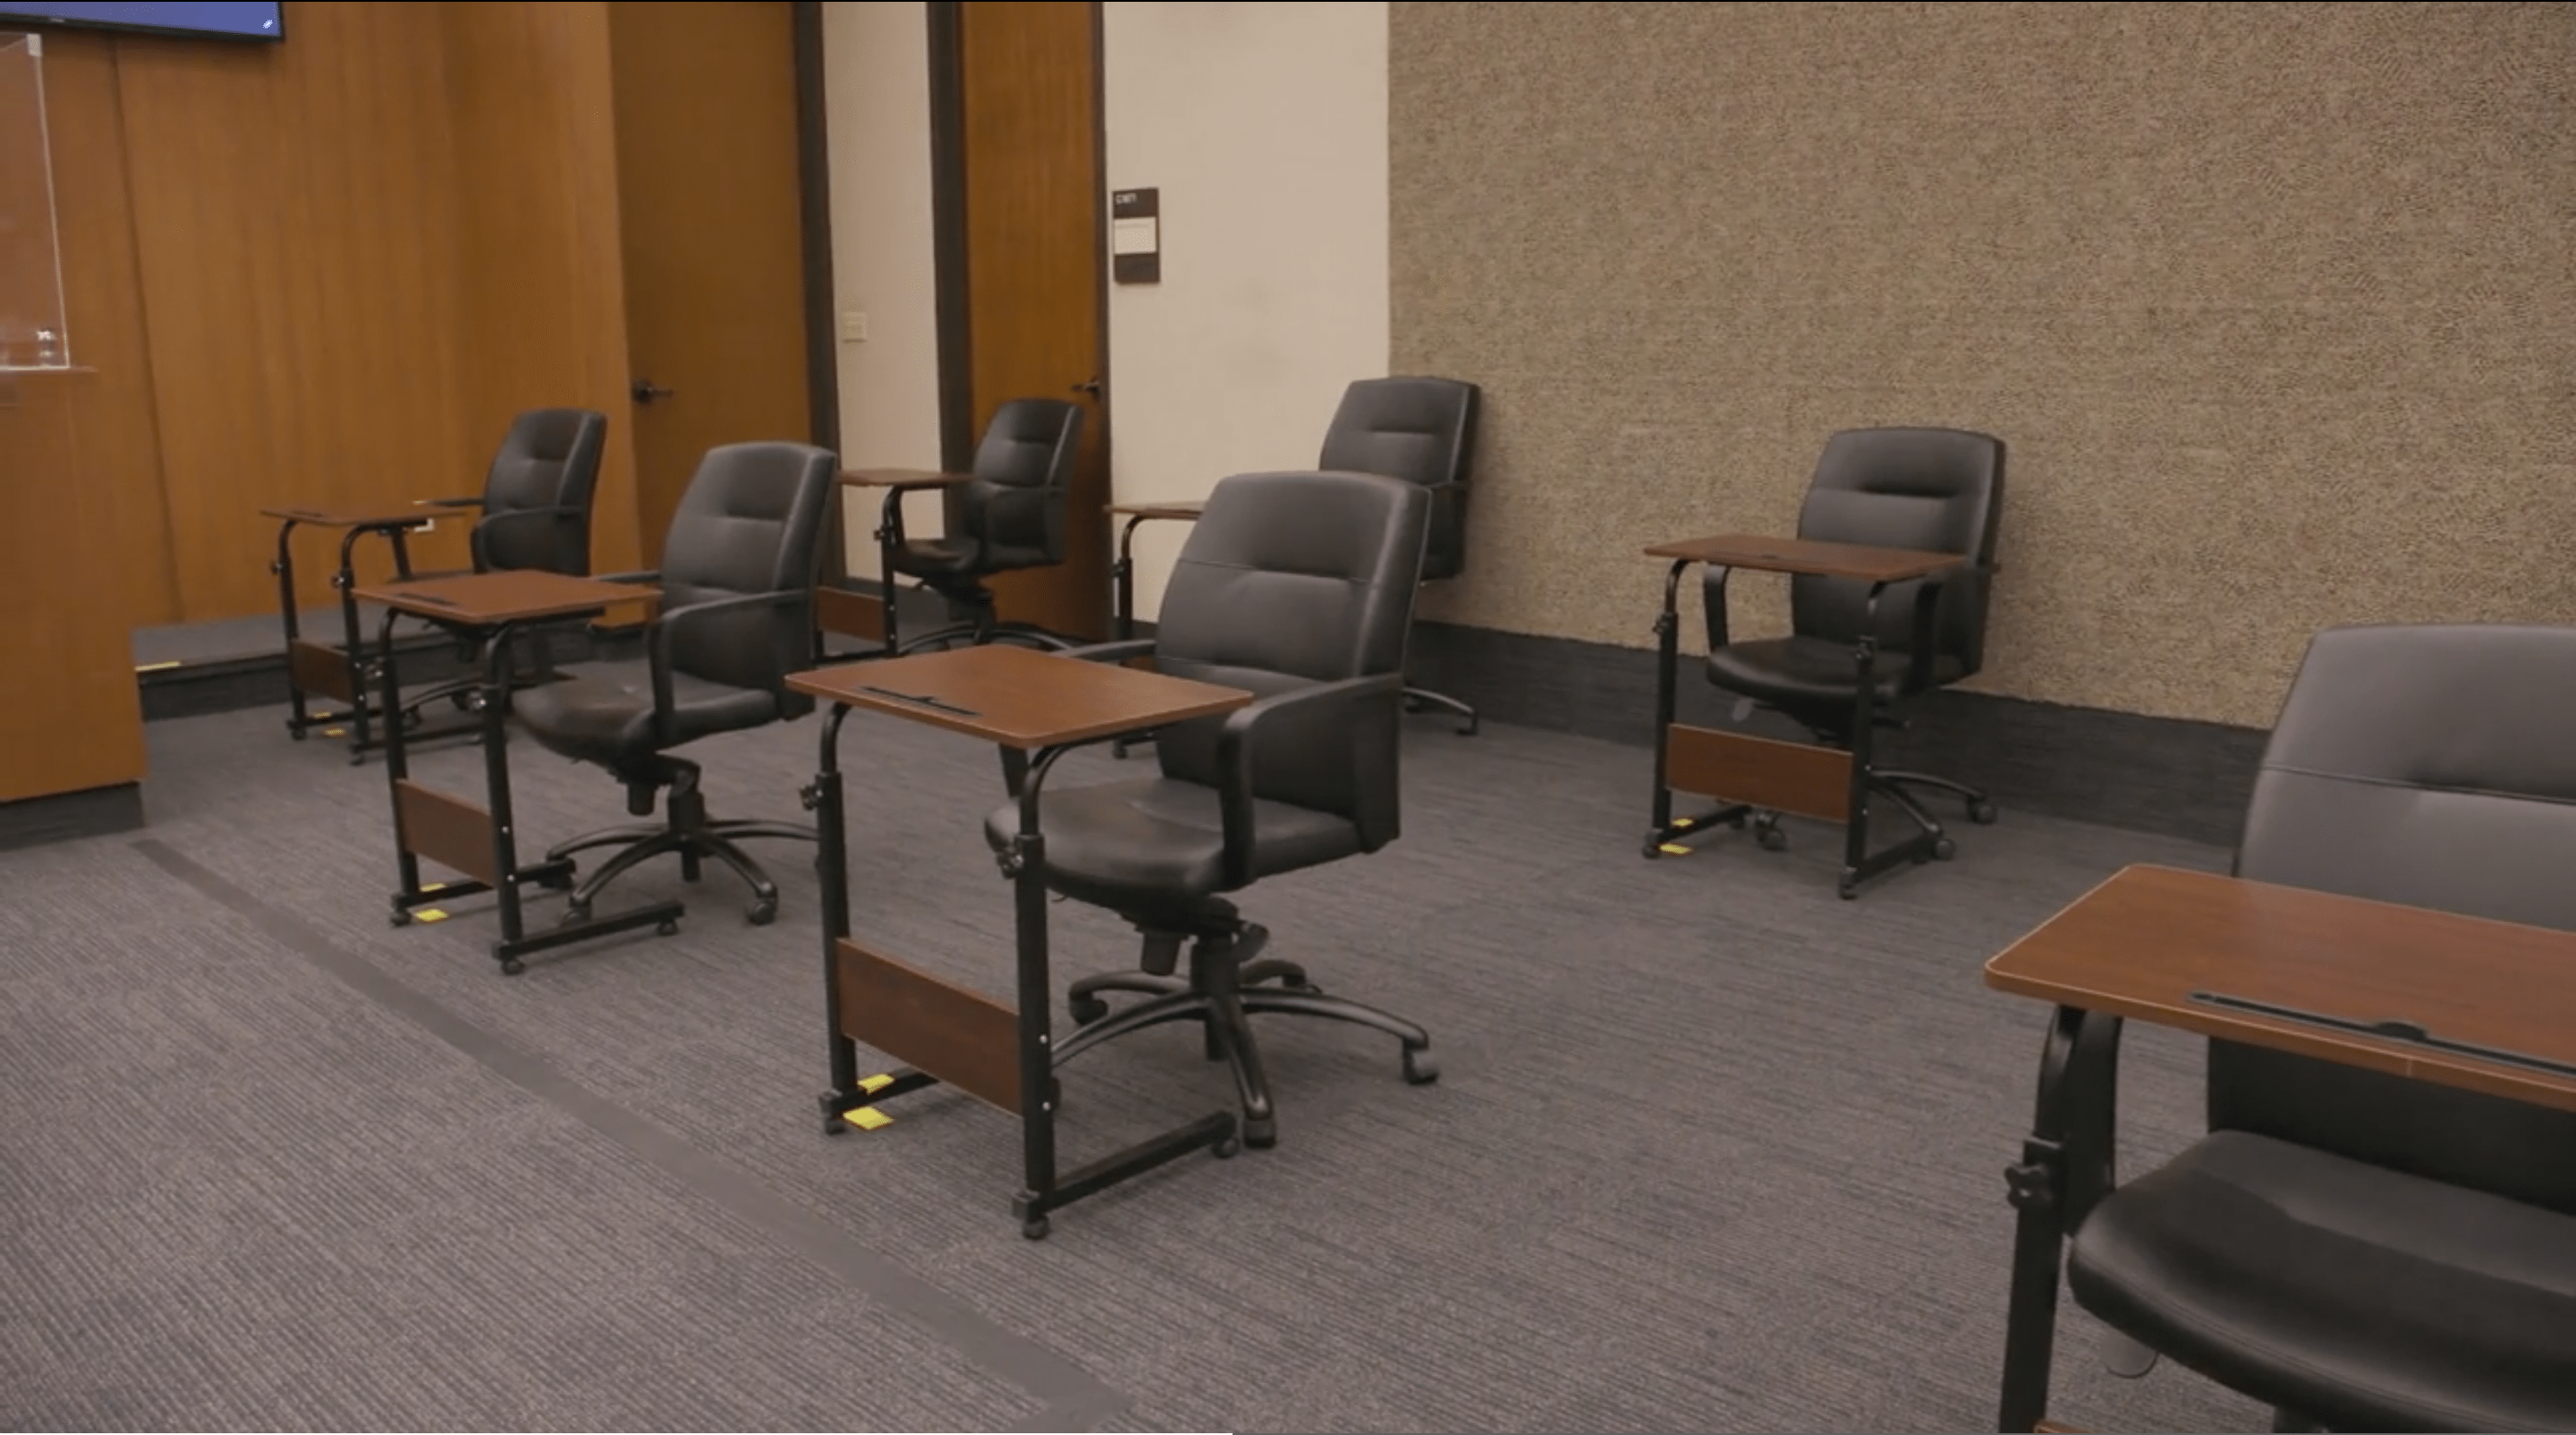 Jury chairs sit socially distanced in a court room.